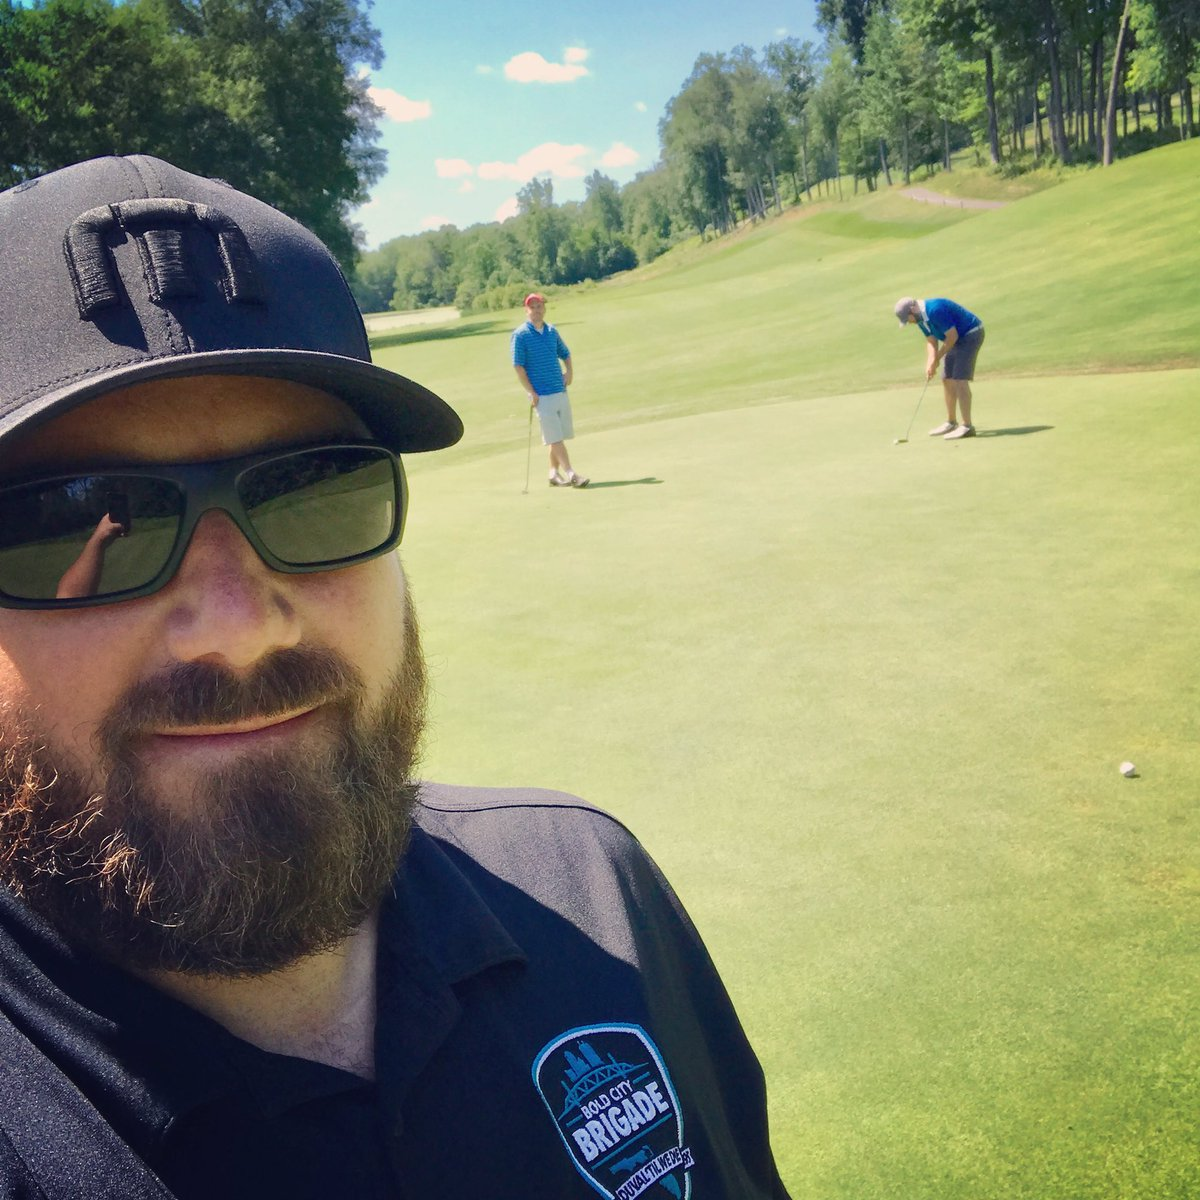 @BoldCityBrigade Representing BCB #Jaguars on the golf course. At Wintonbury Hills in Connecticut. <br>http://pic.twitter.com/sVQigfxBrF